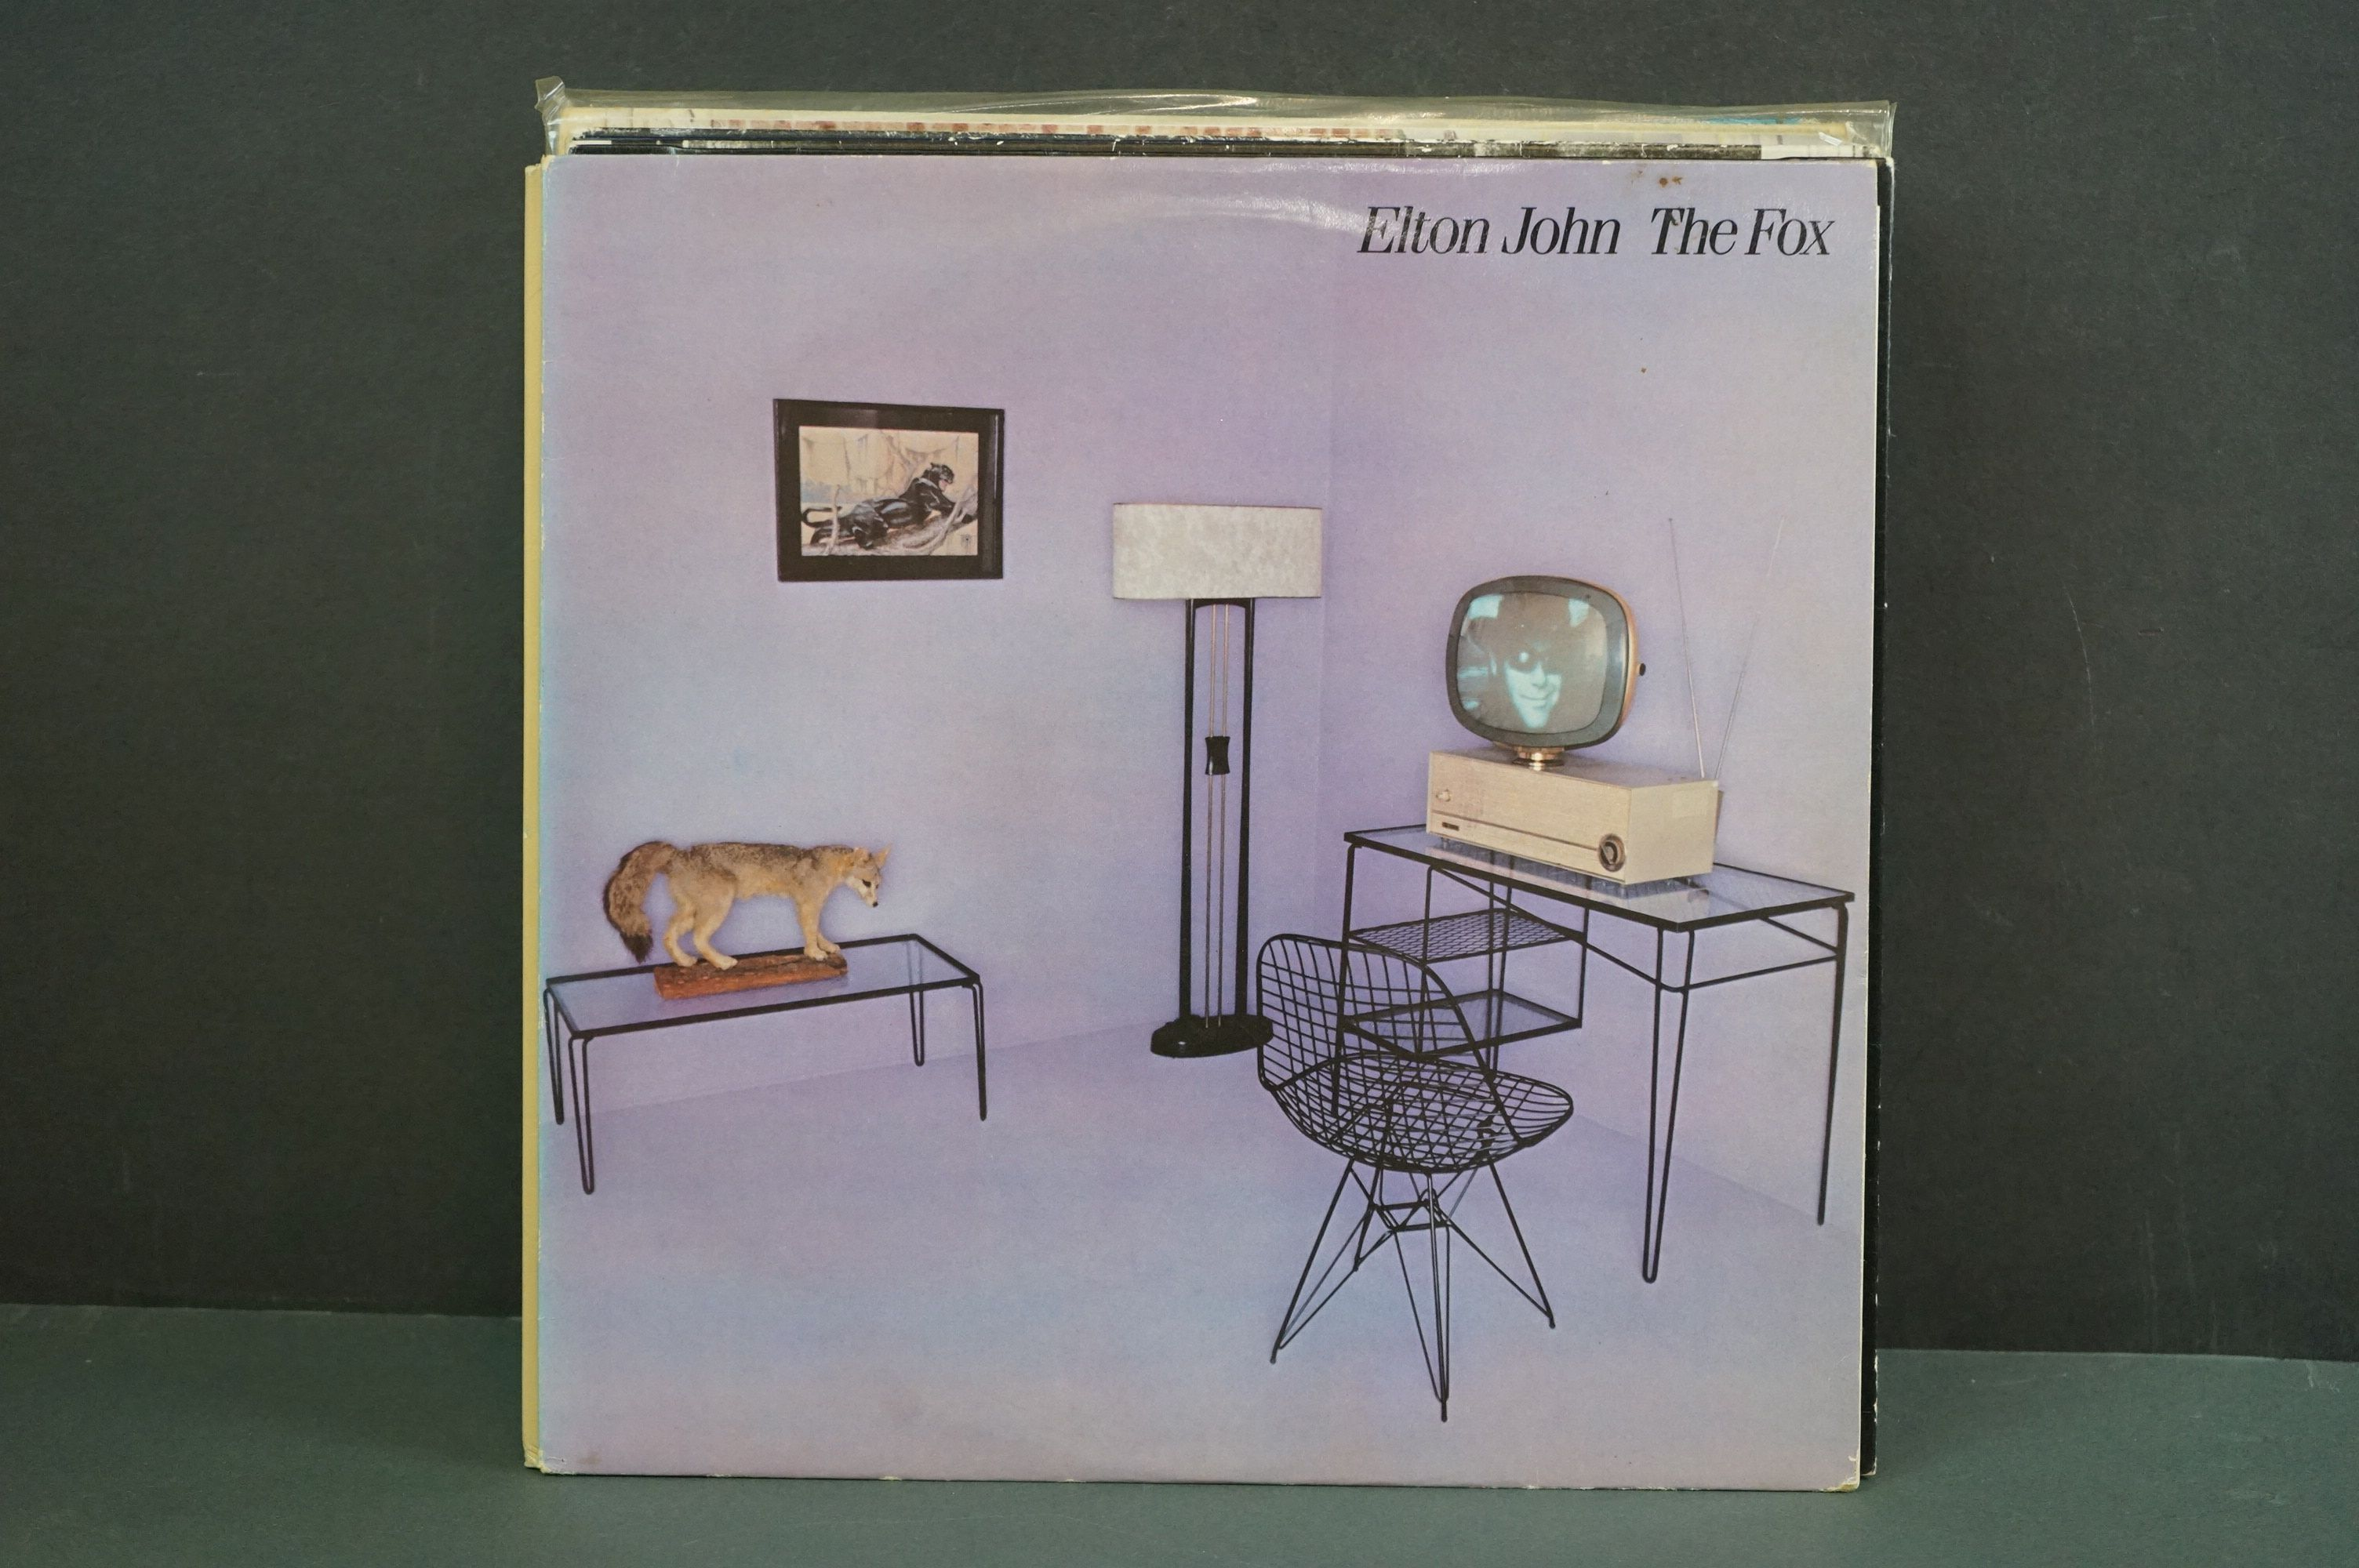 Vinyl - 16 Elton John LPs to include A Single Man, Blue Moves, Greatest Hits, Goodbye Yellow Brick - Image 3 of 16